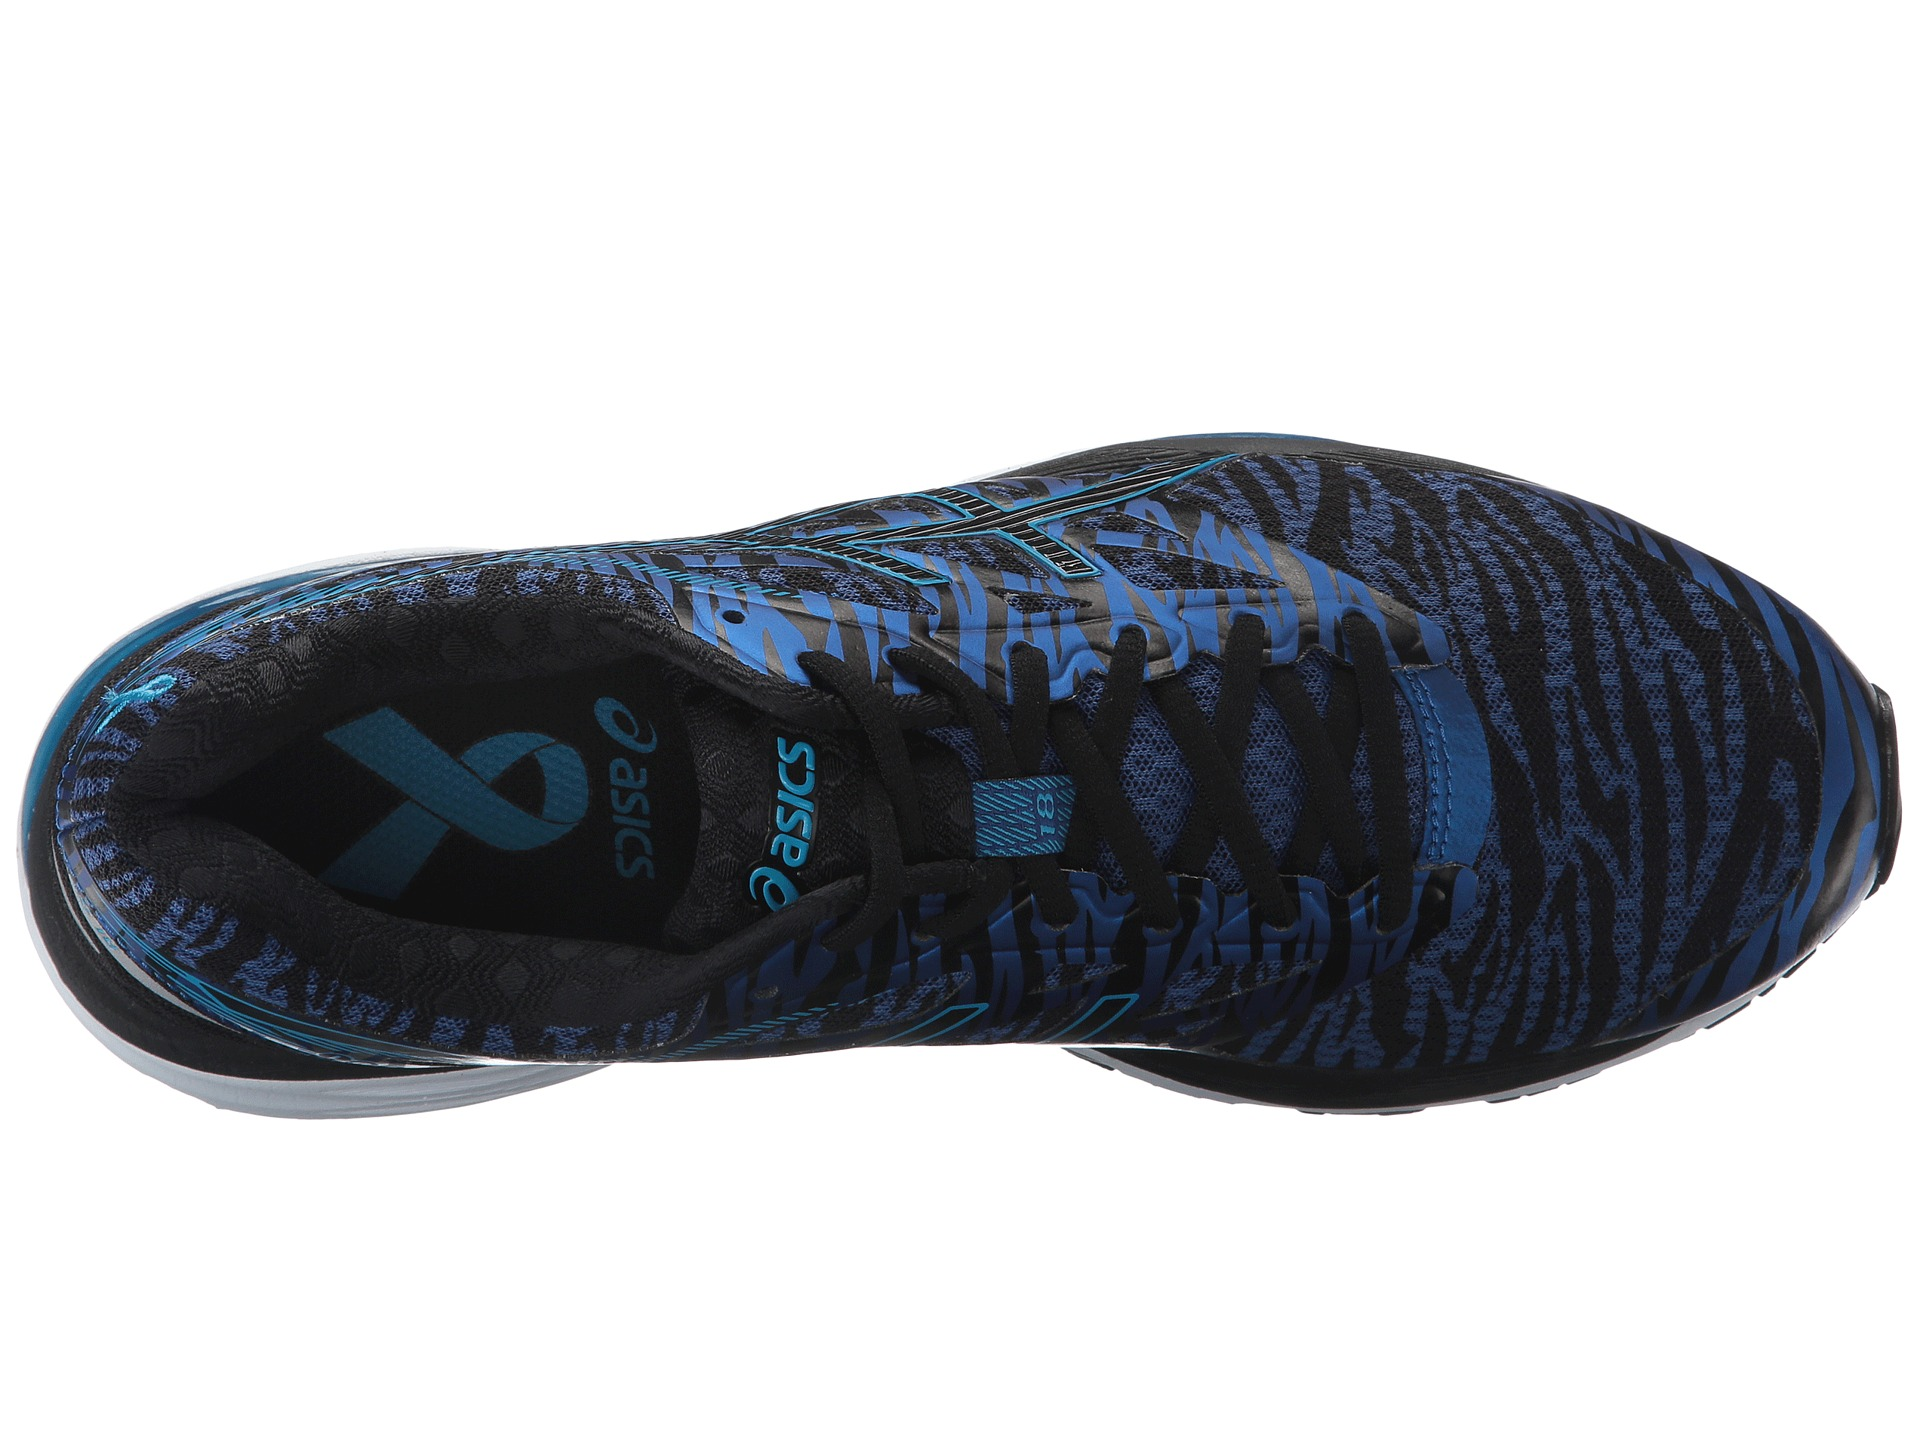 asics gel foundation 10 deepblue